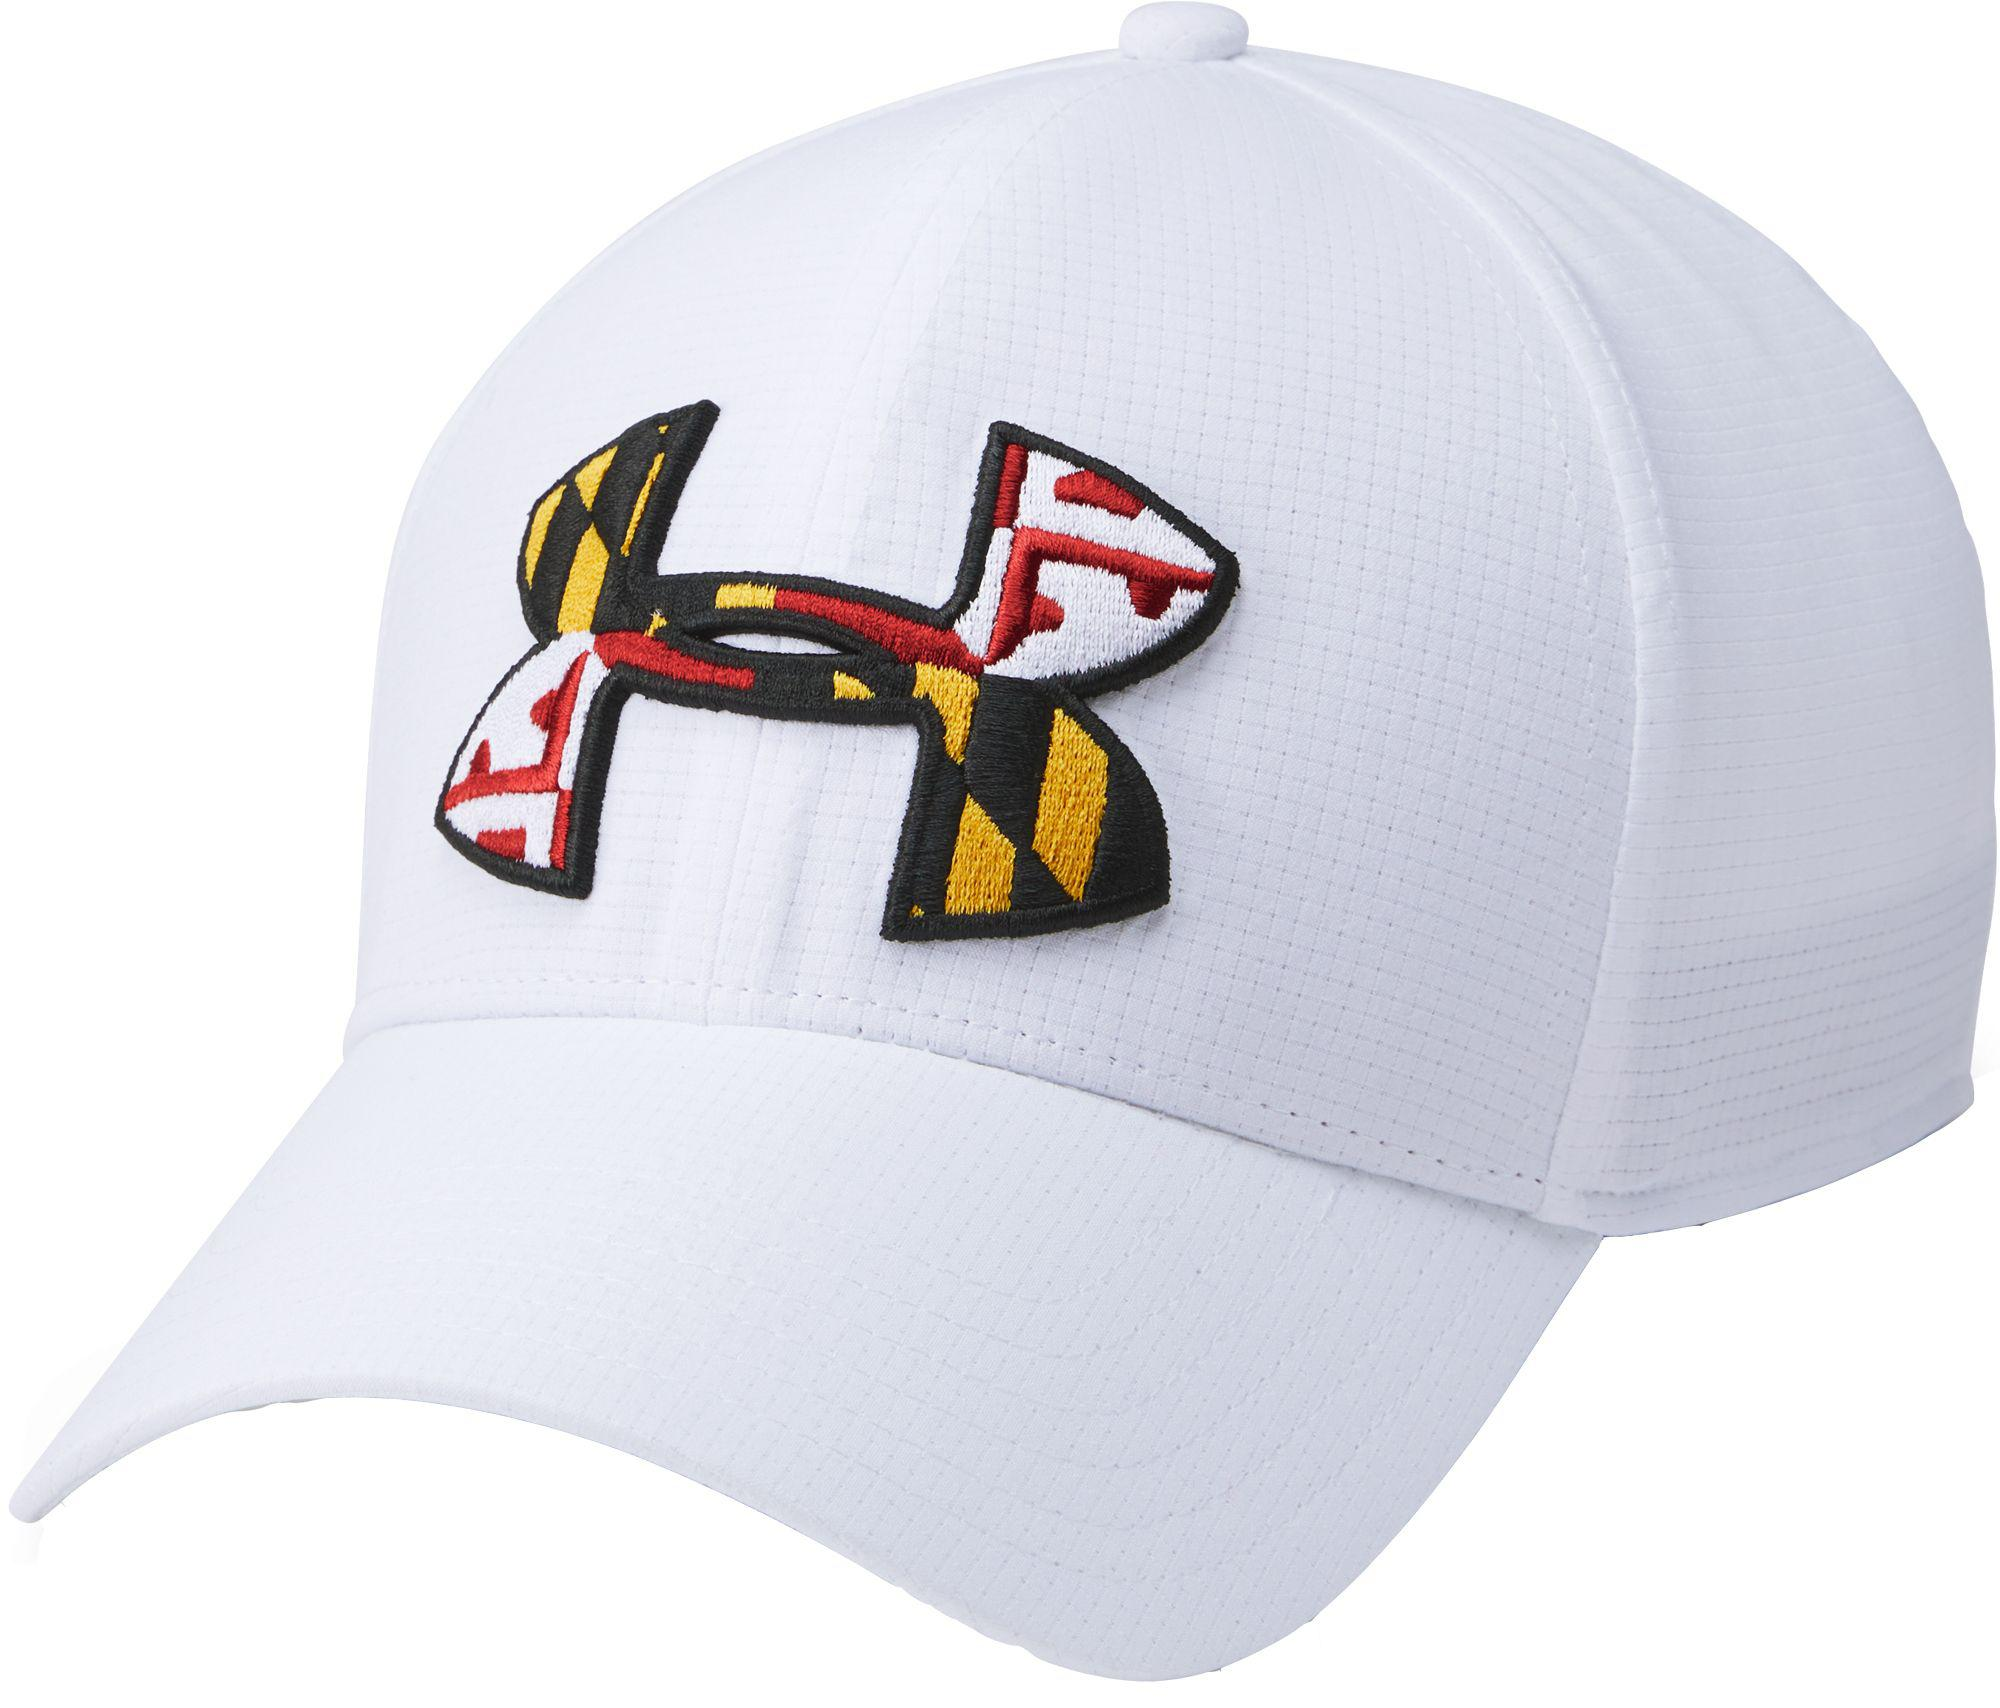 80c26f8e515 Lyst - Under Armour Maryland Flag Big Logo Low Crown Hat in White ...